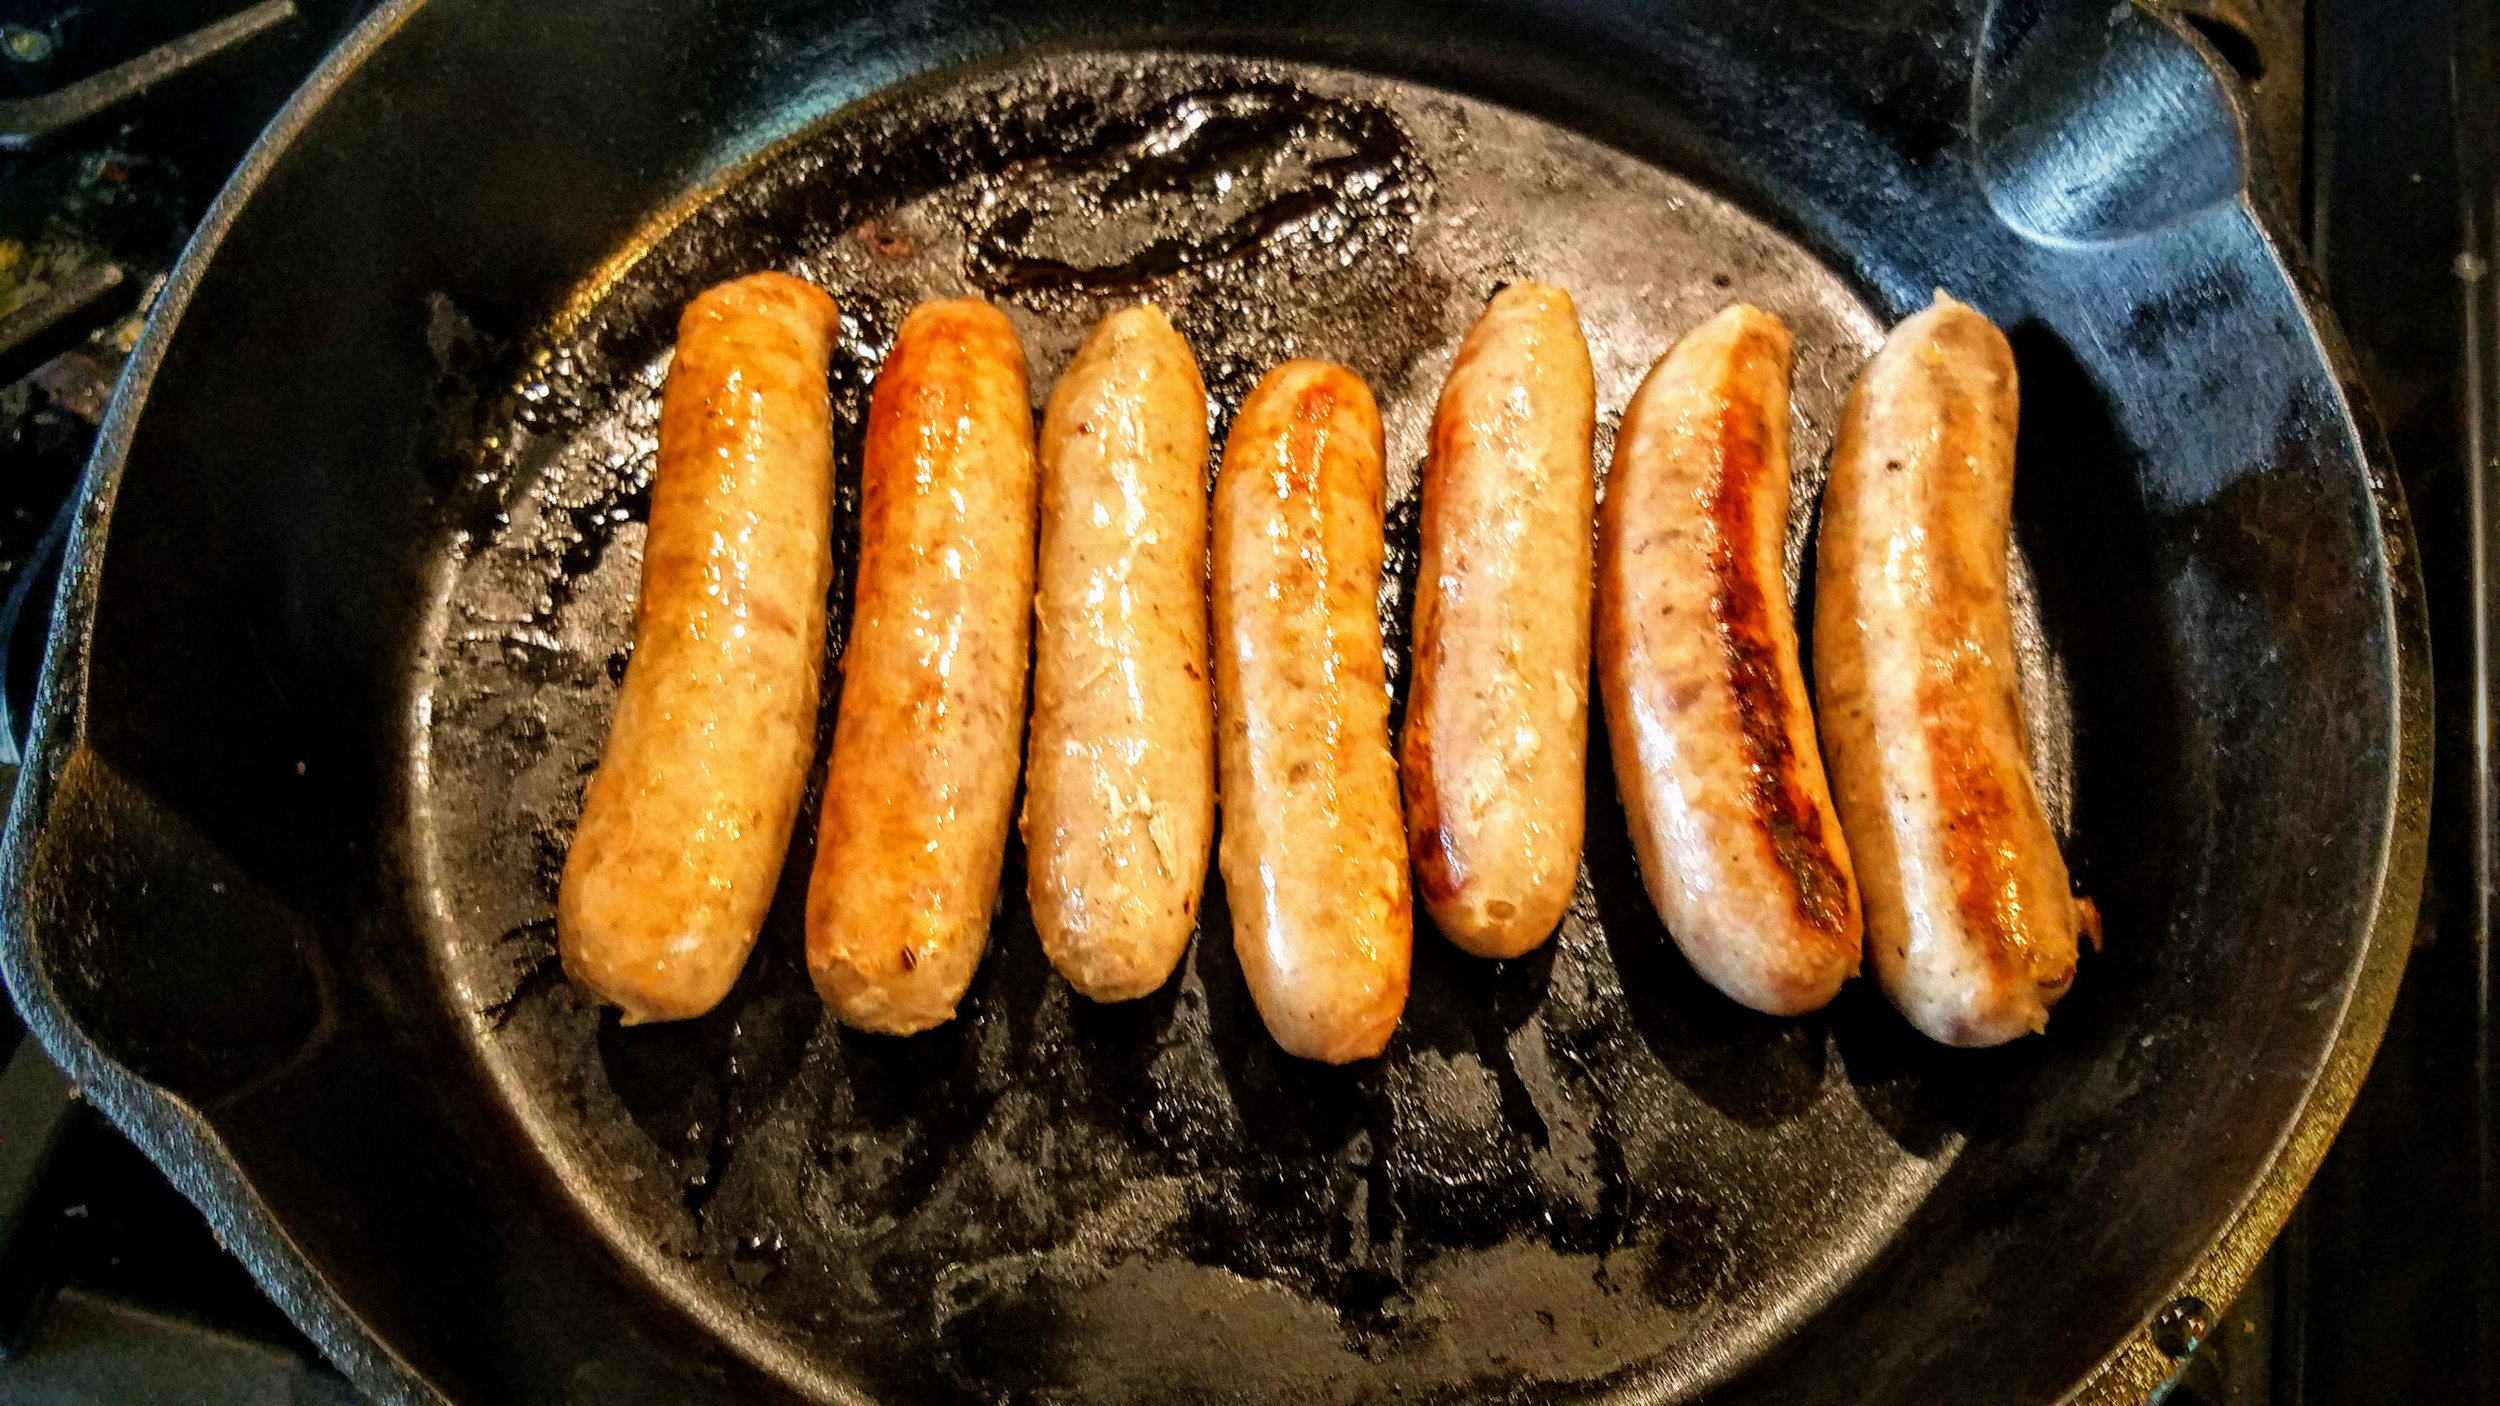 Our mouthwatering maple links are a customer favorite! We love these as a breakfast treat. They're a flavorful not-too-sweet sausage made with real Wisconsin maple syrup.